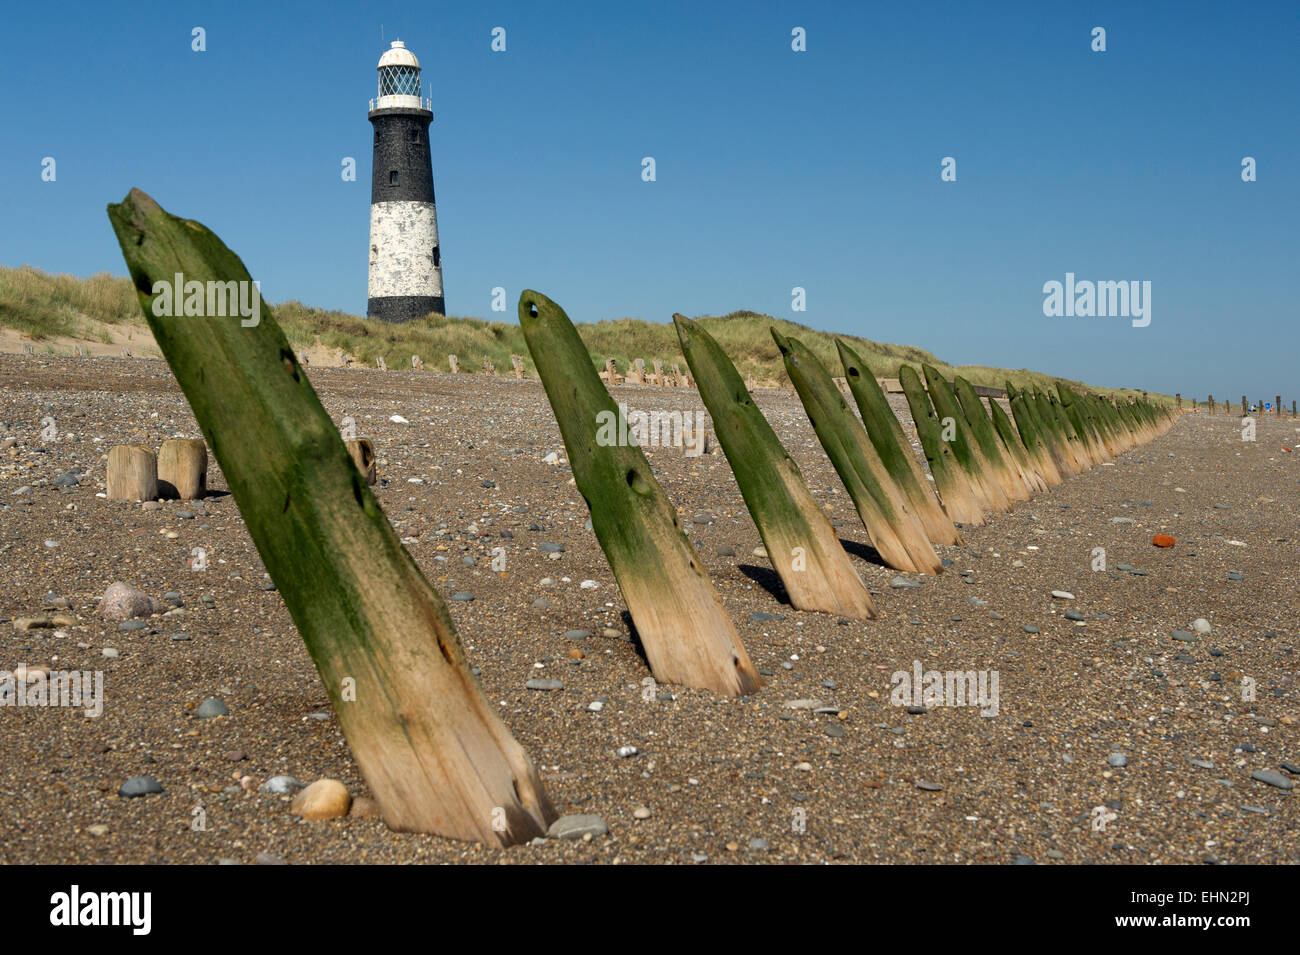 Wooden breakers, famous lighthouse on beach, Spurn Point, East Yorkshire, Kingston Upon Hull. England,UK - Stock Image